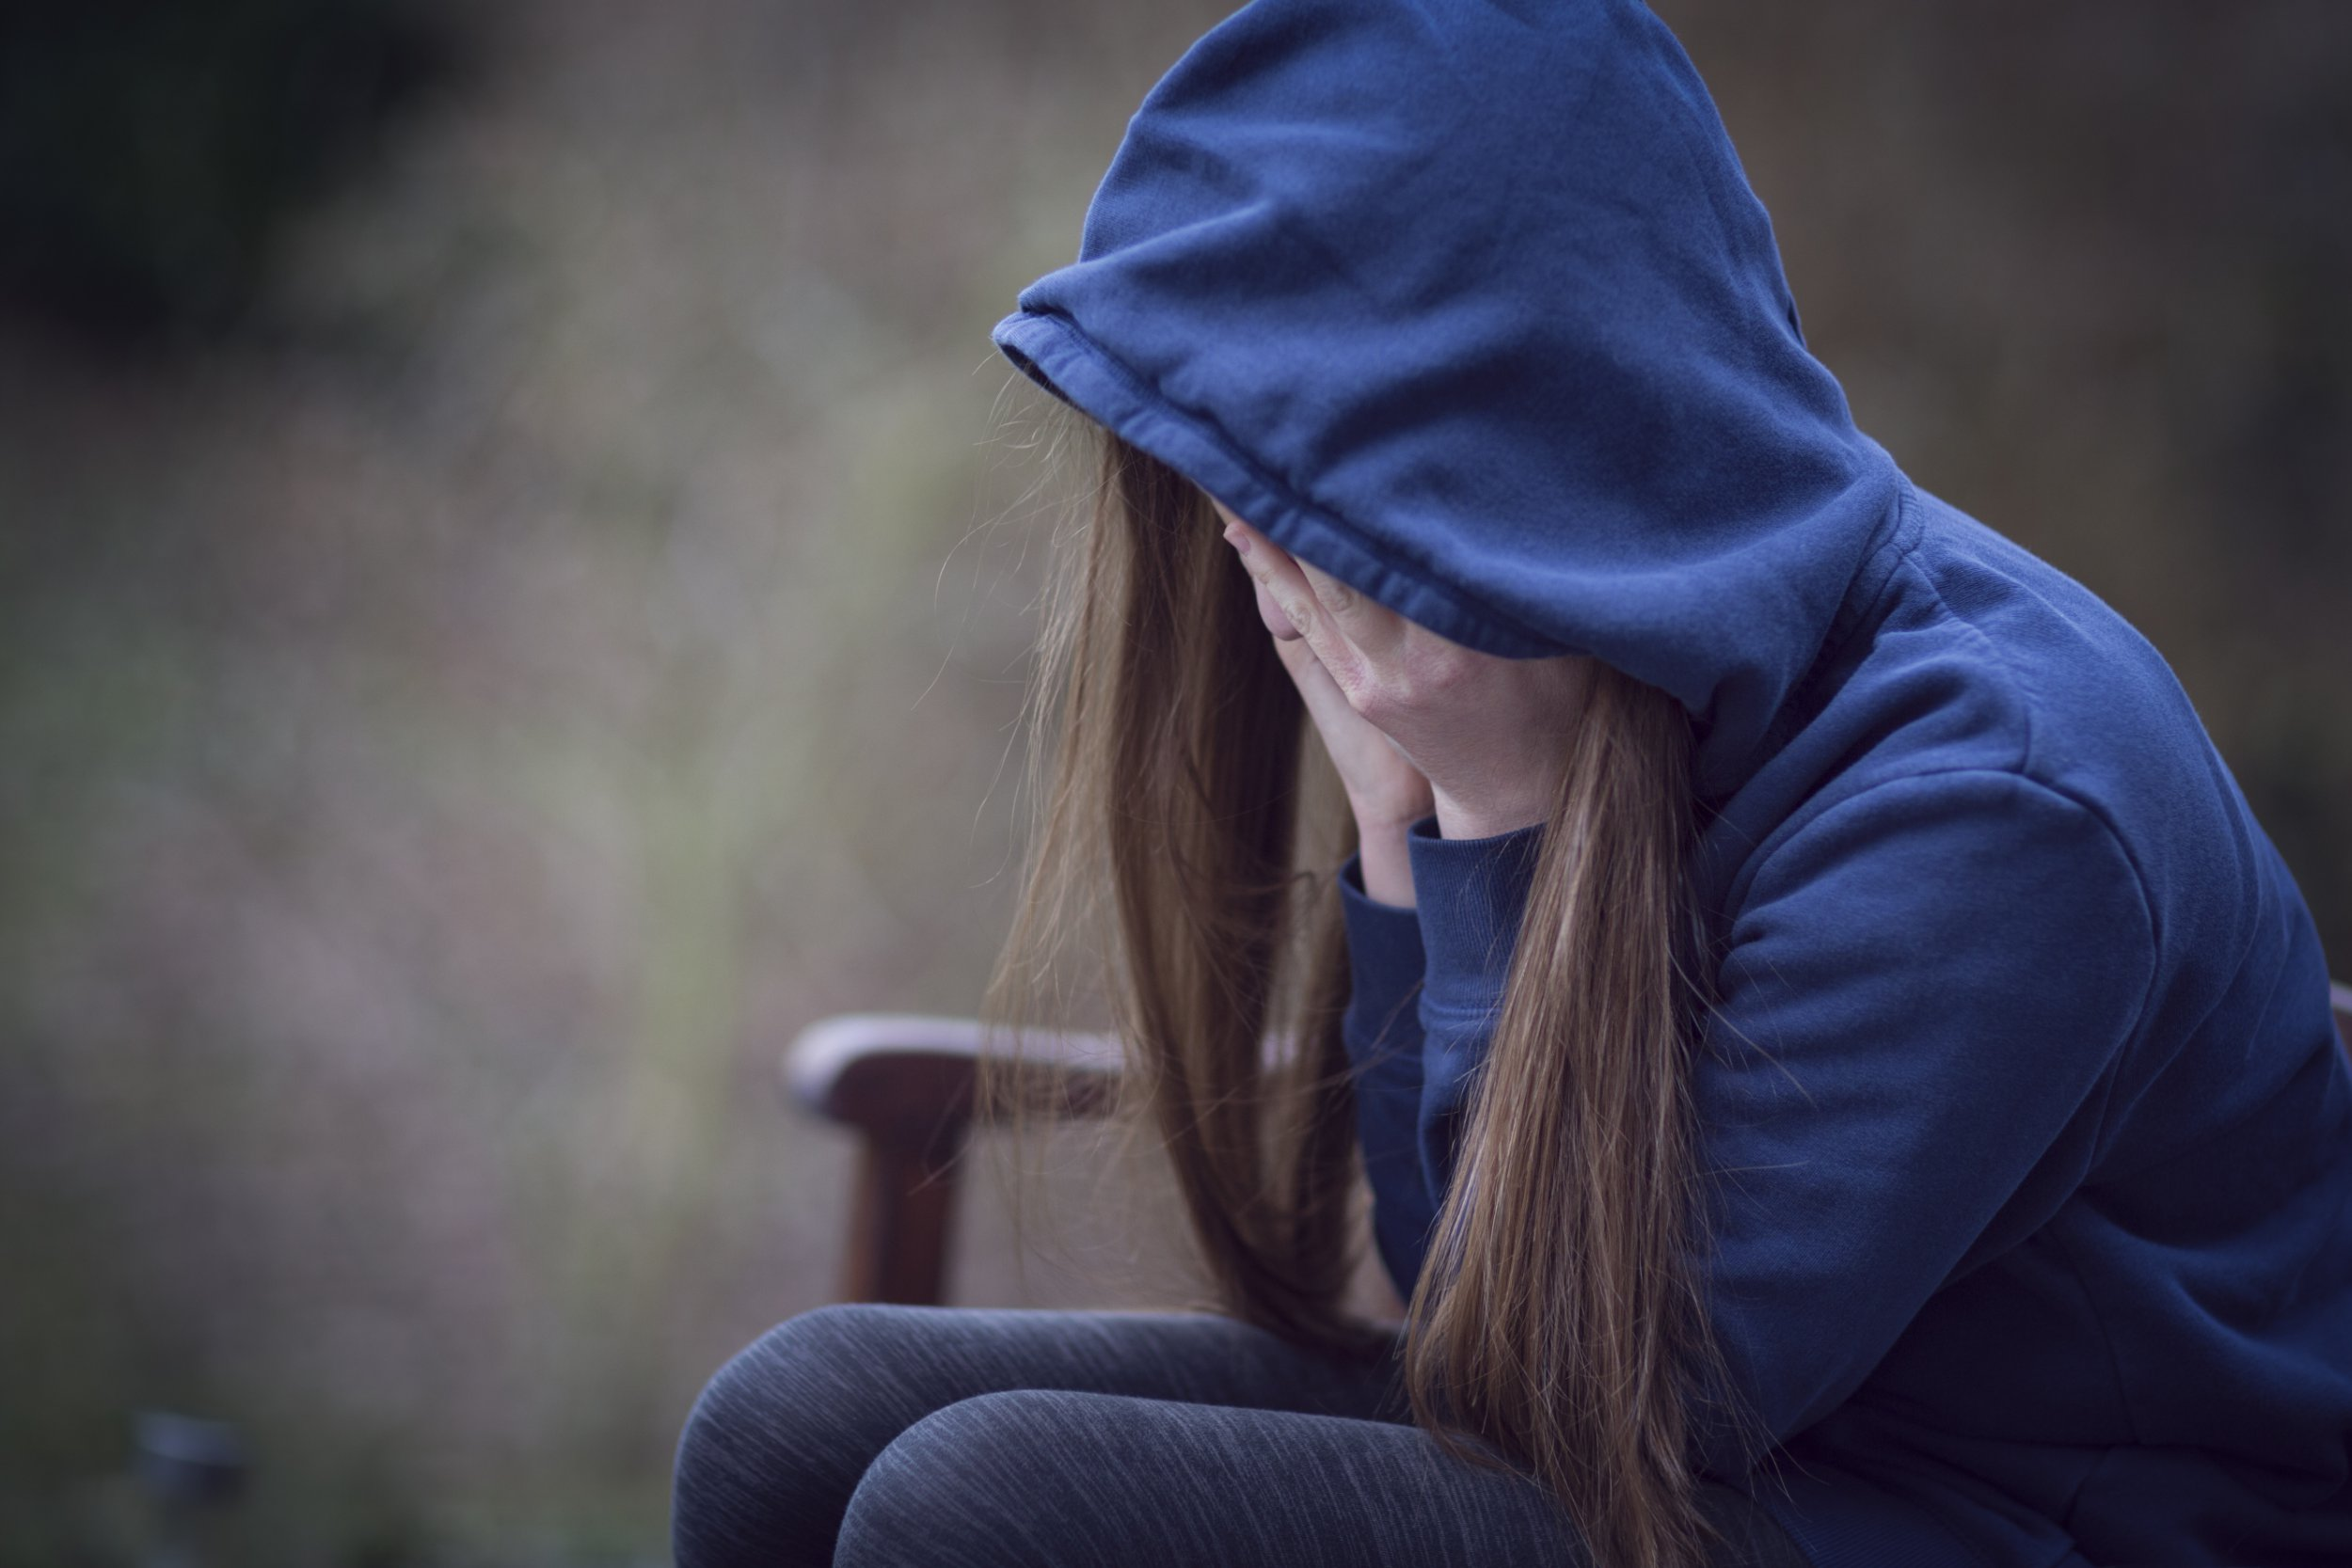 Children denied help with mental health unless they attempt suicide